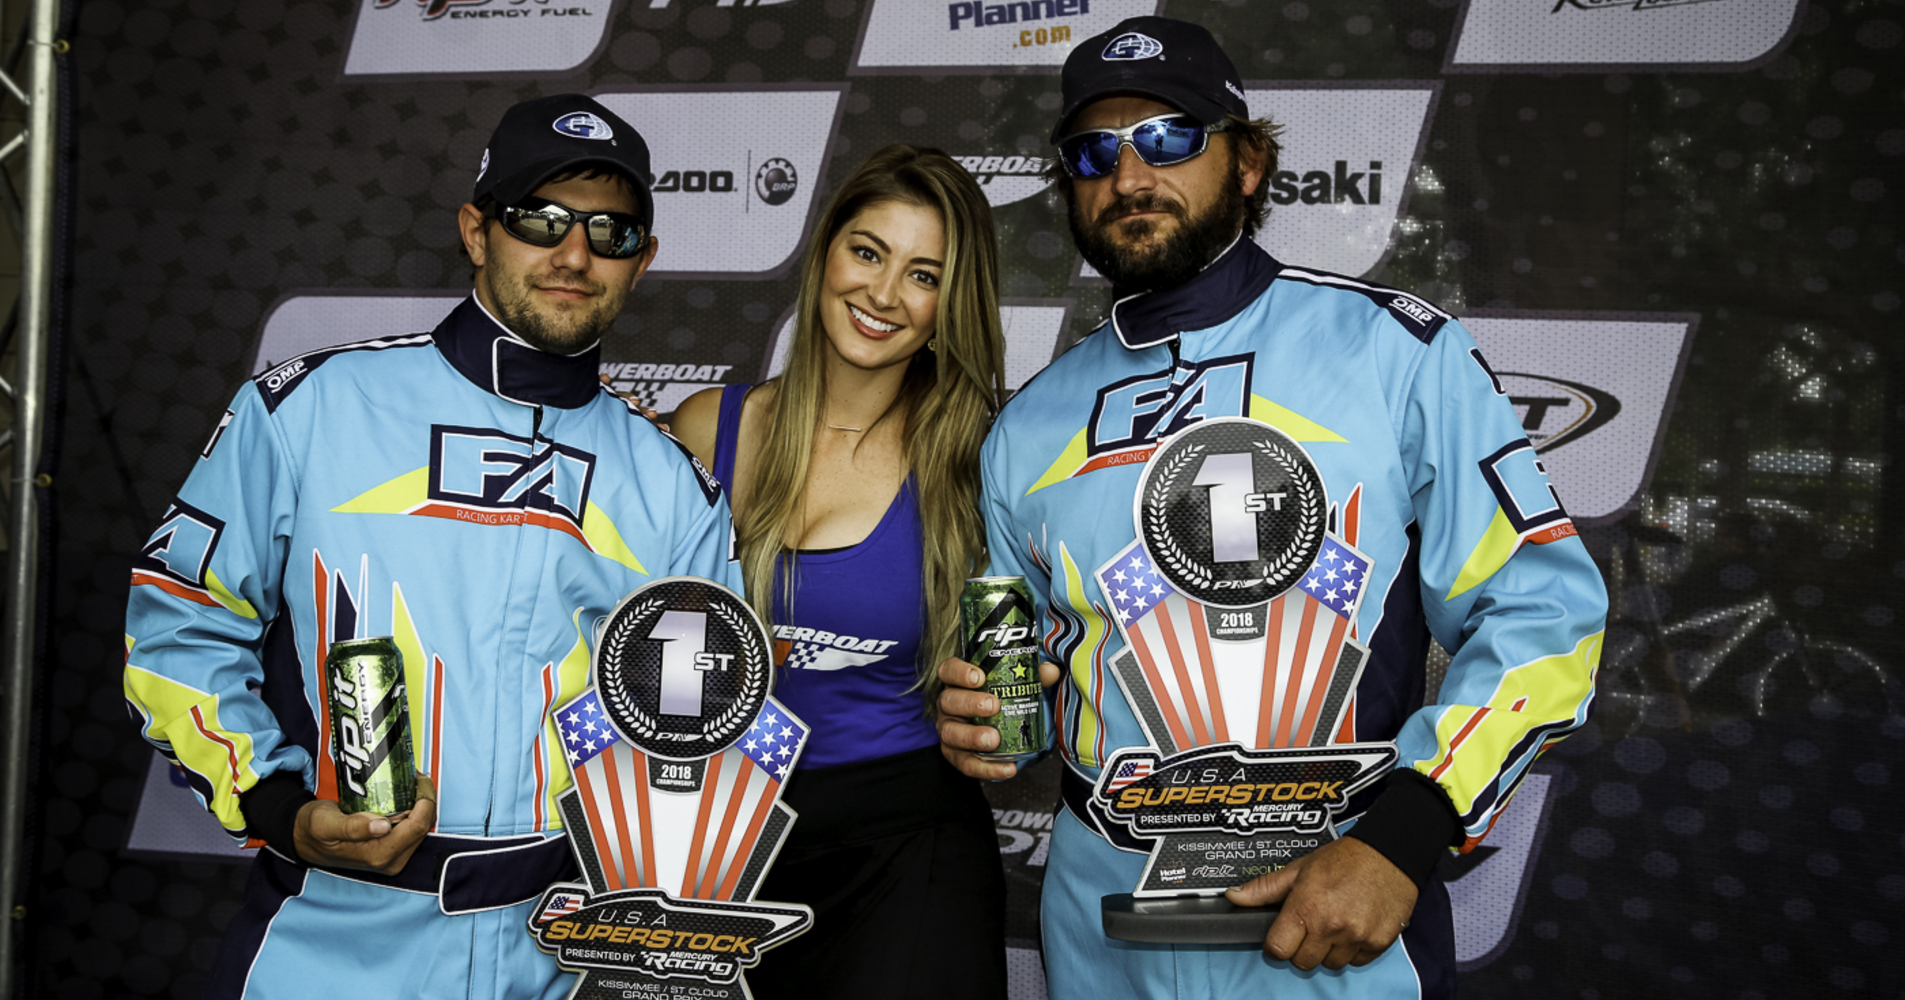 Gallagher Racing posing on the podium after their impressive weekend